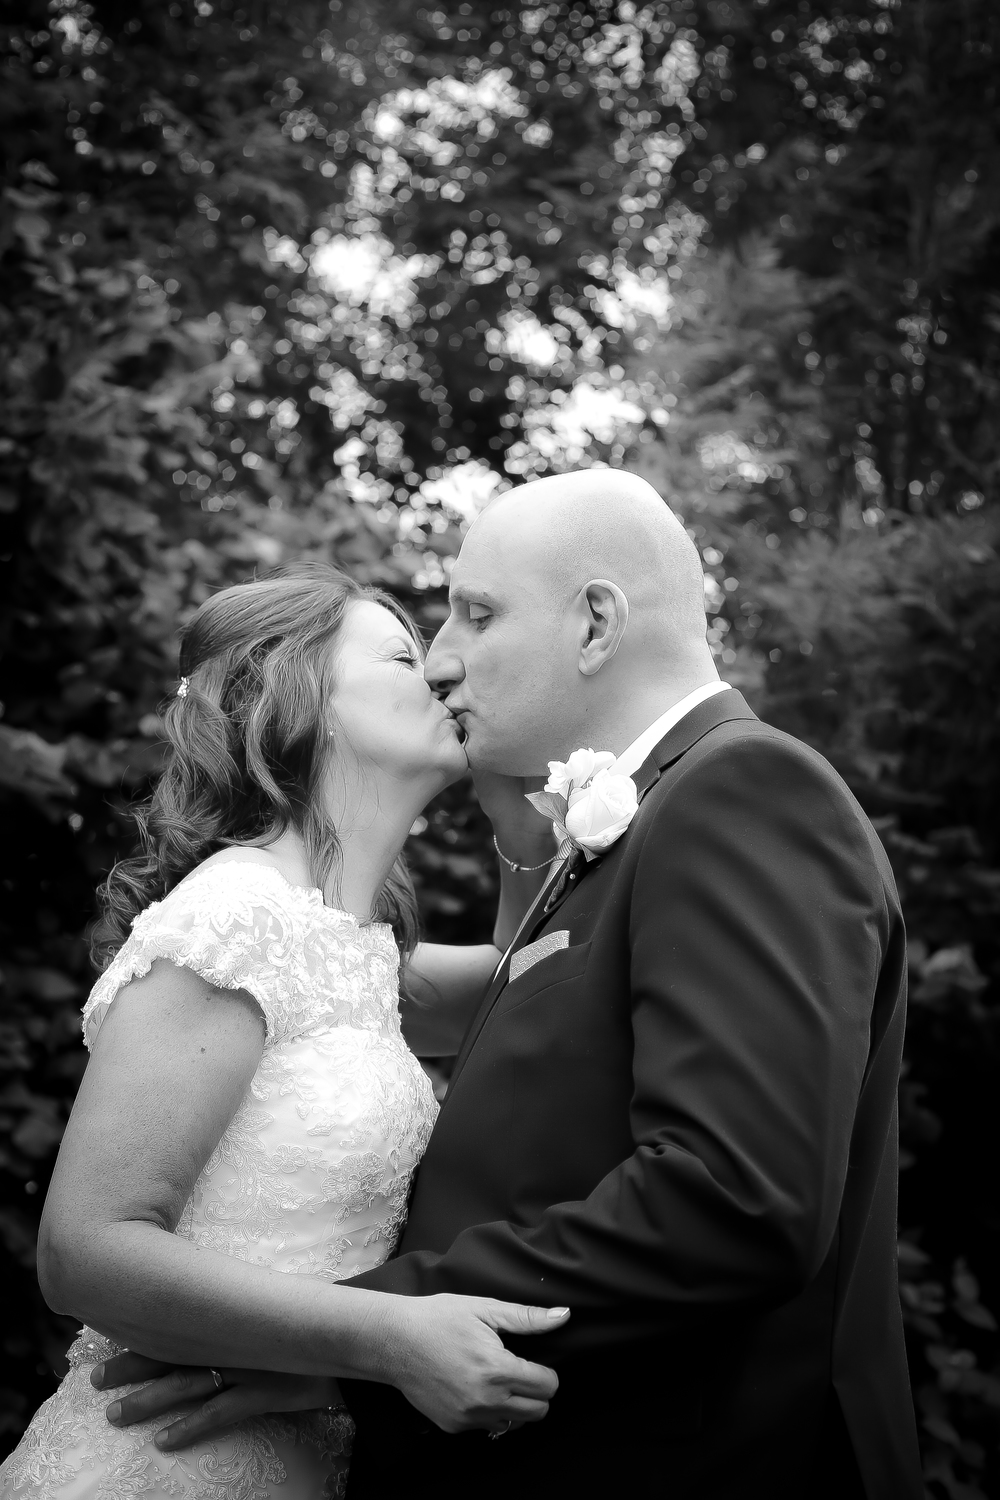 Jan & Paul BW-451.jpg